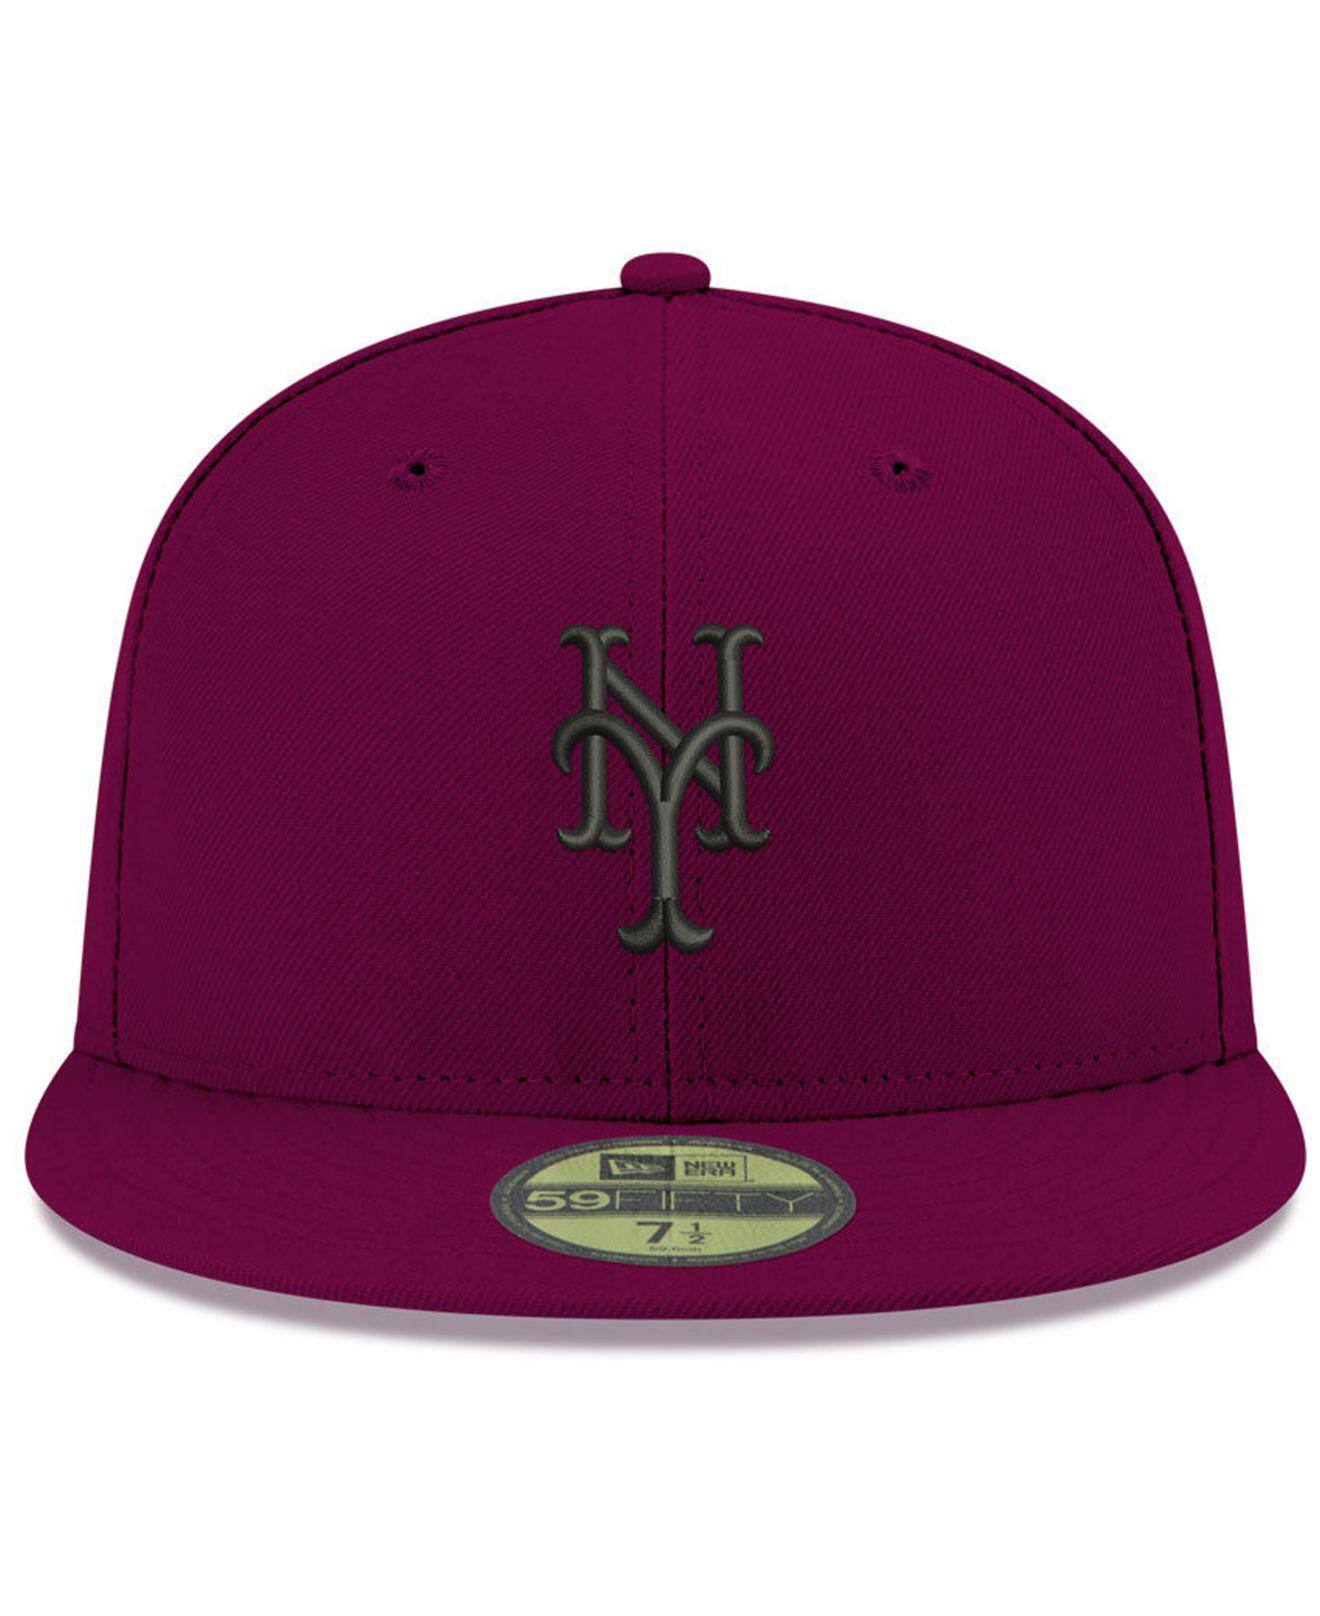 cheap for discount b5afd e6554 ... canada lyst ktz new york yankees reverse c dub 59fifty fitted cap in  purple for men